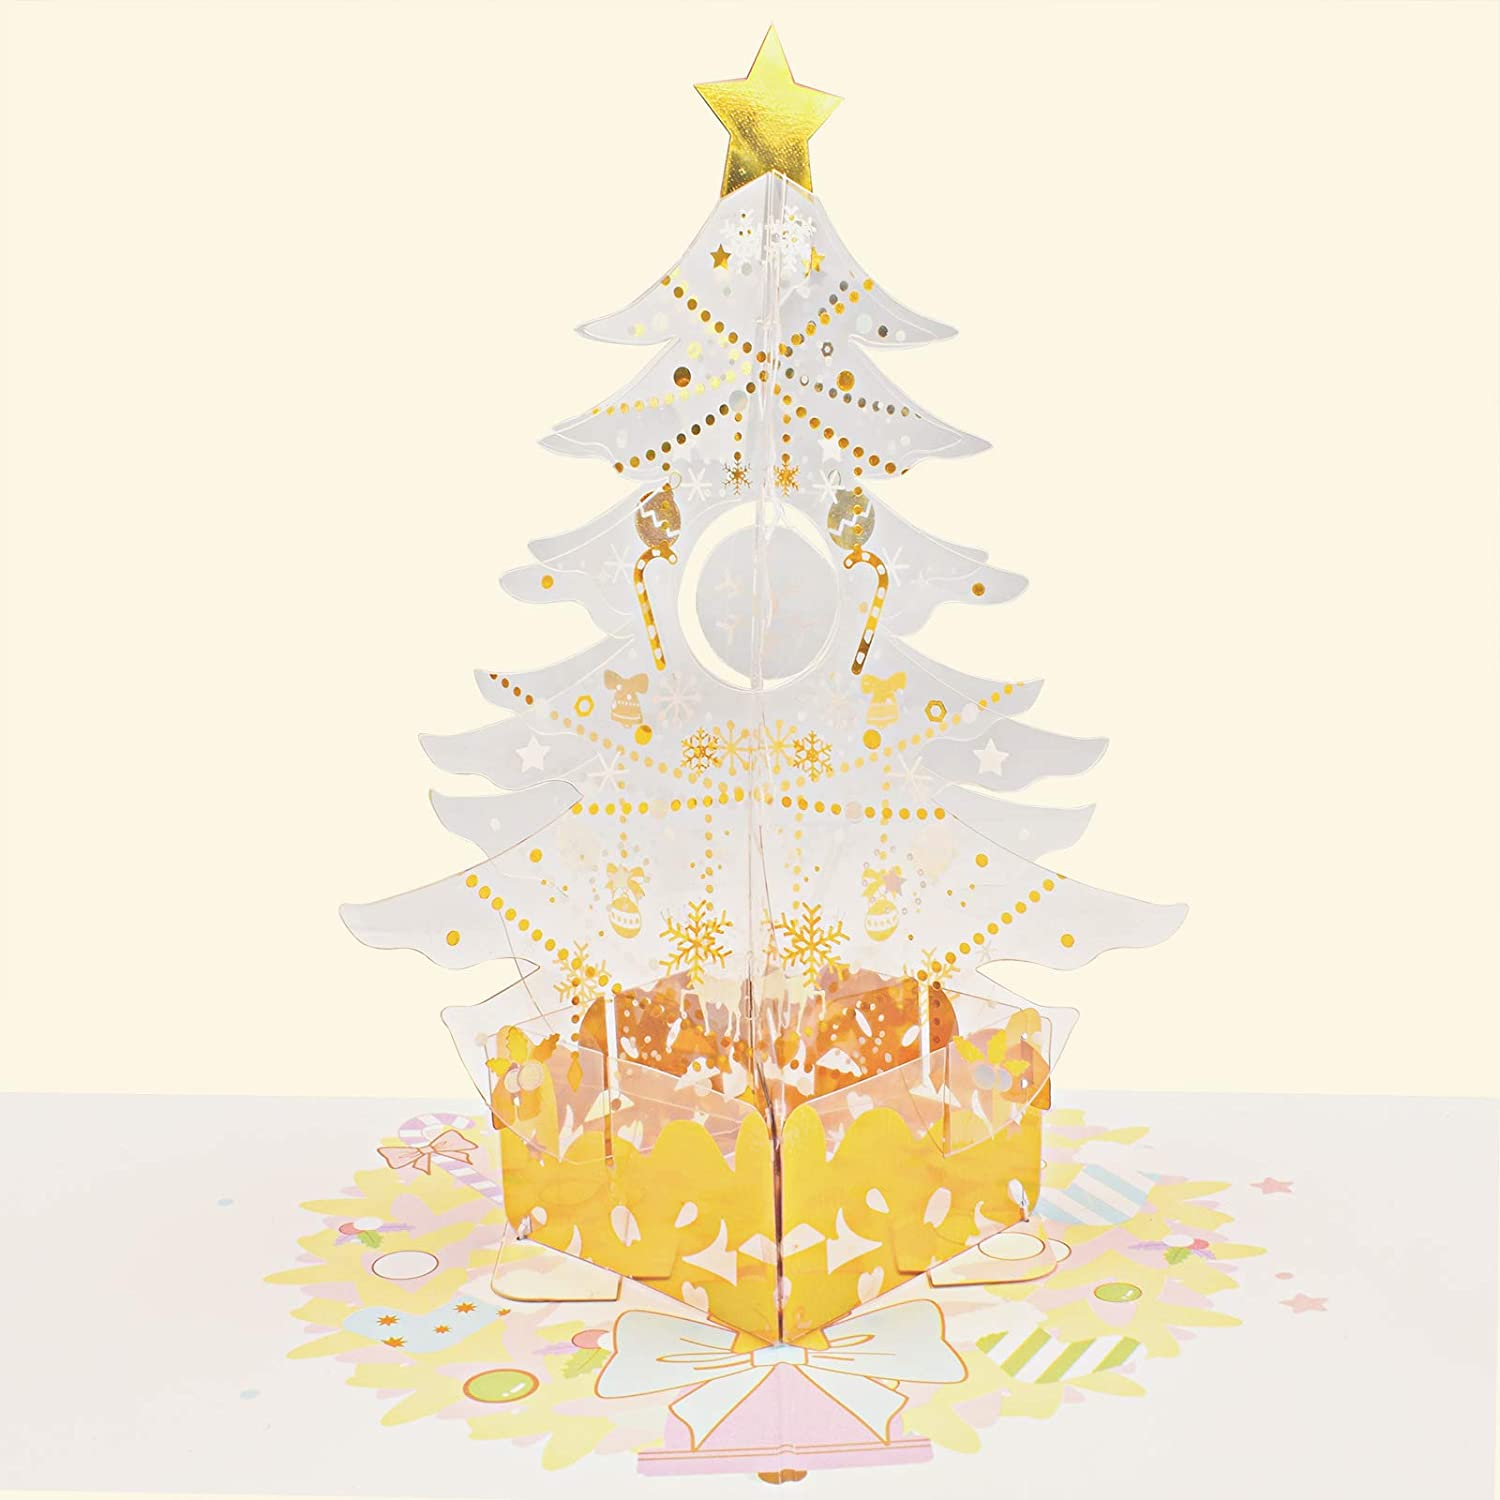 CTZD Transparent Christmas tree Pop Up Sale special price 3D Gr Popup Handmade Max 46% OFF Card